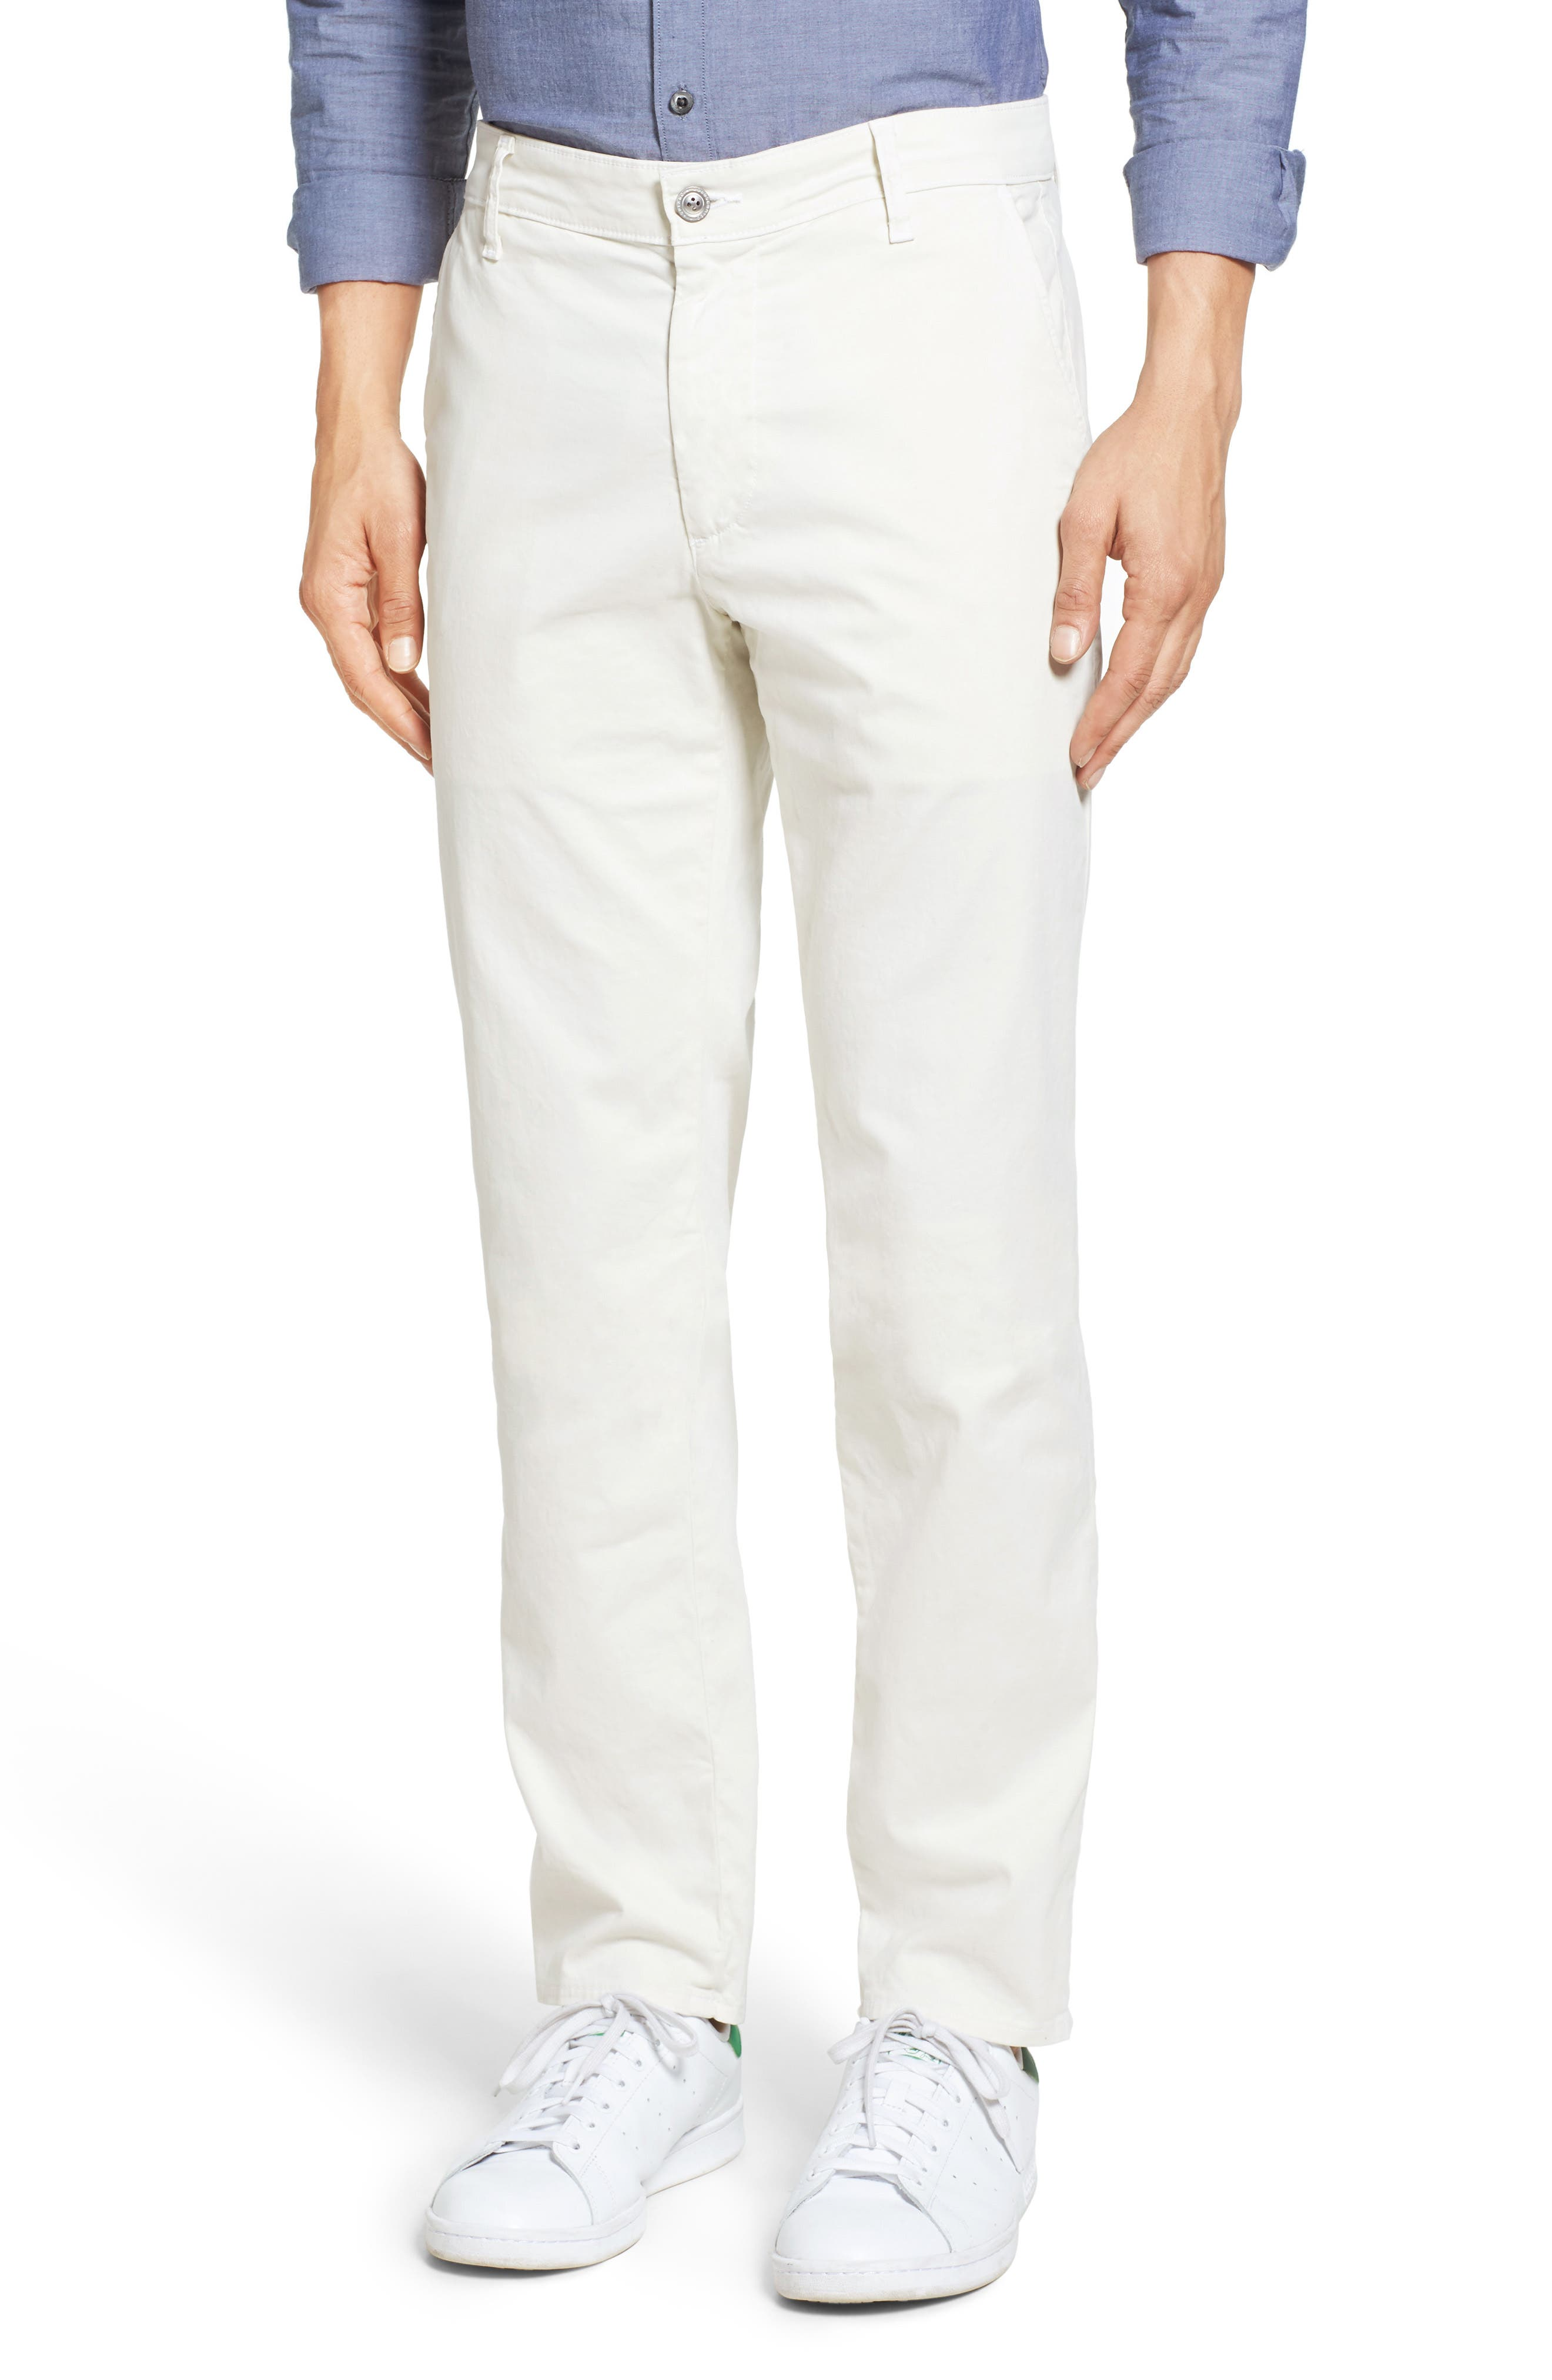 'The Lux' Tailored Straight Leg Chinos,                             Main thumbnail 5, color,